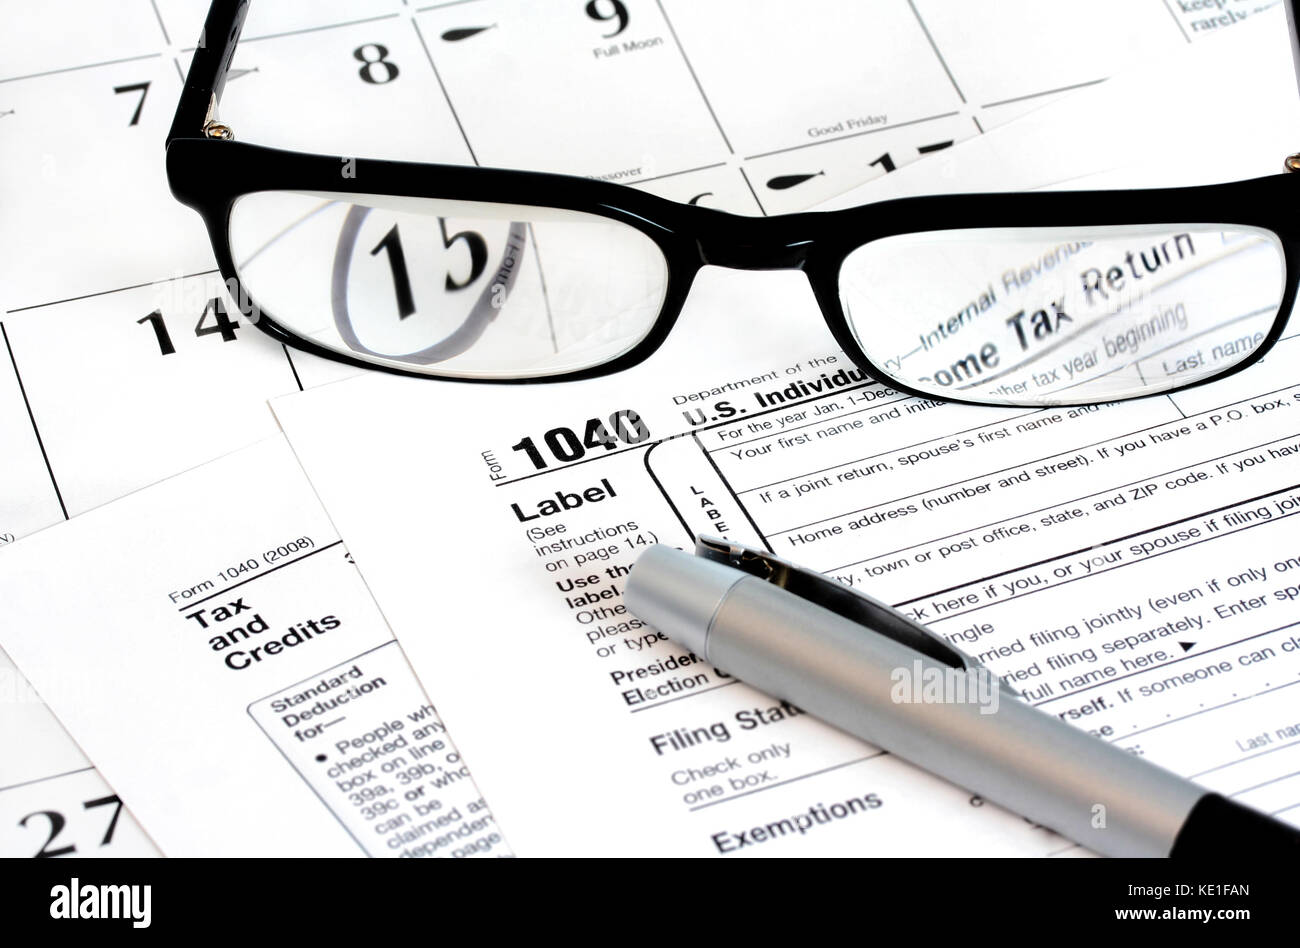 Federal income tax 1040 form on a calendar with the 15th noted on it with a pen and glasses on top of it. Stock Photo